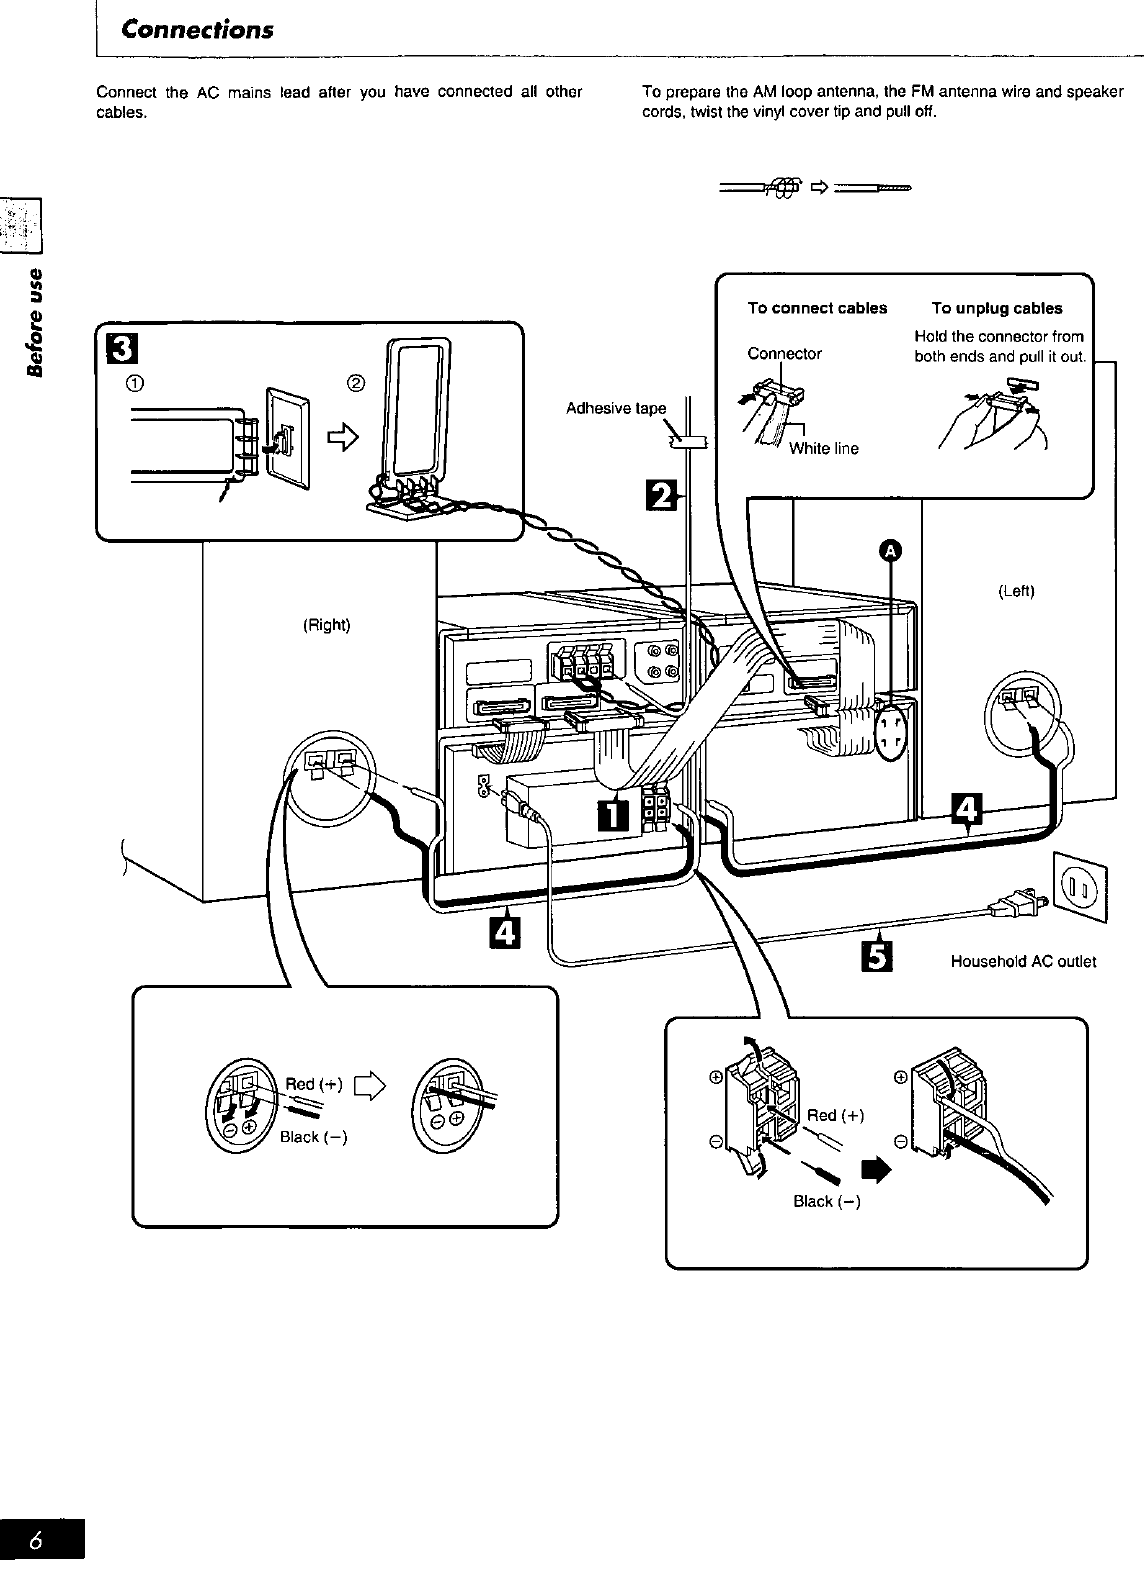 Page 6 of Technics Stereo System SC-HD55 User Guide